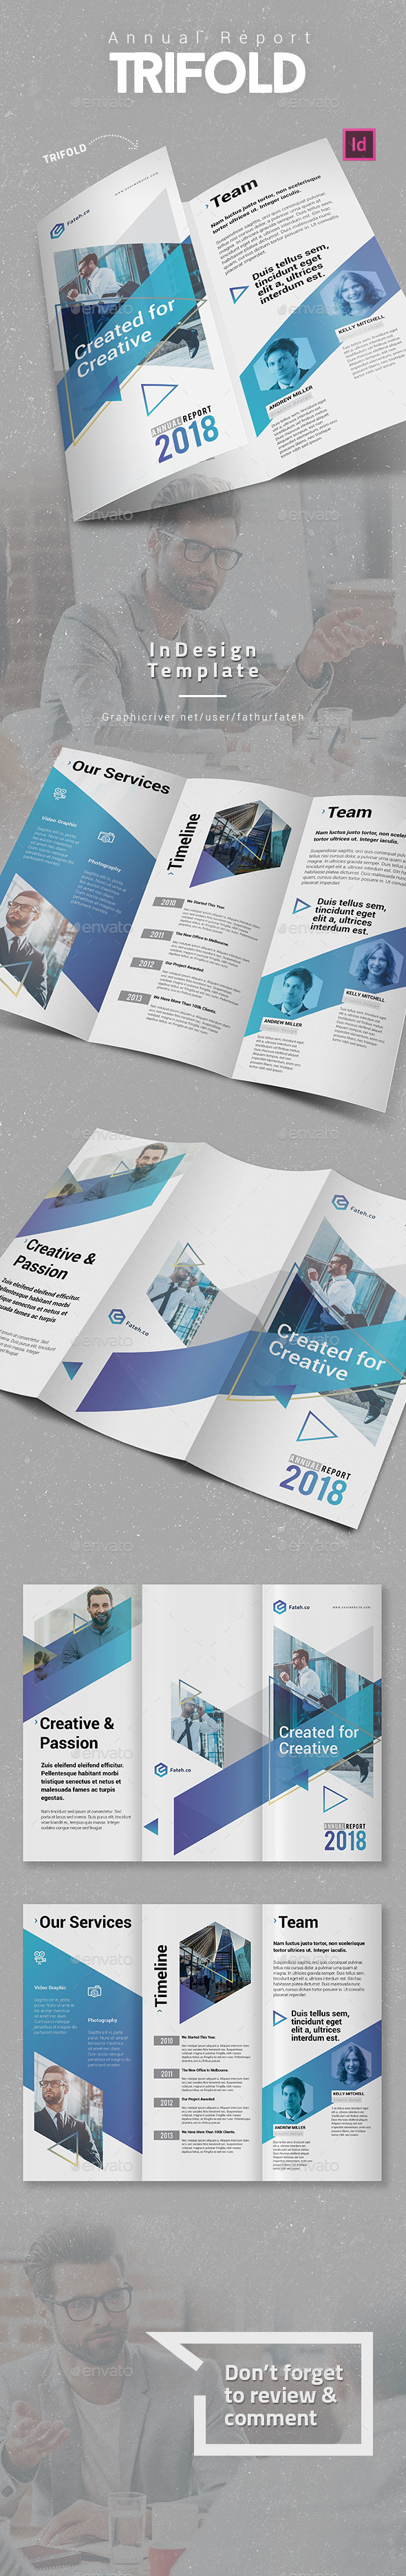 GraphicRiver Annual Report Trifold 21193327